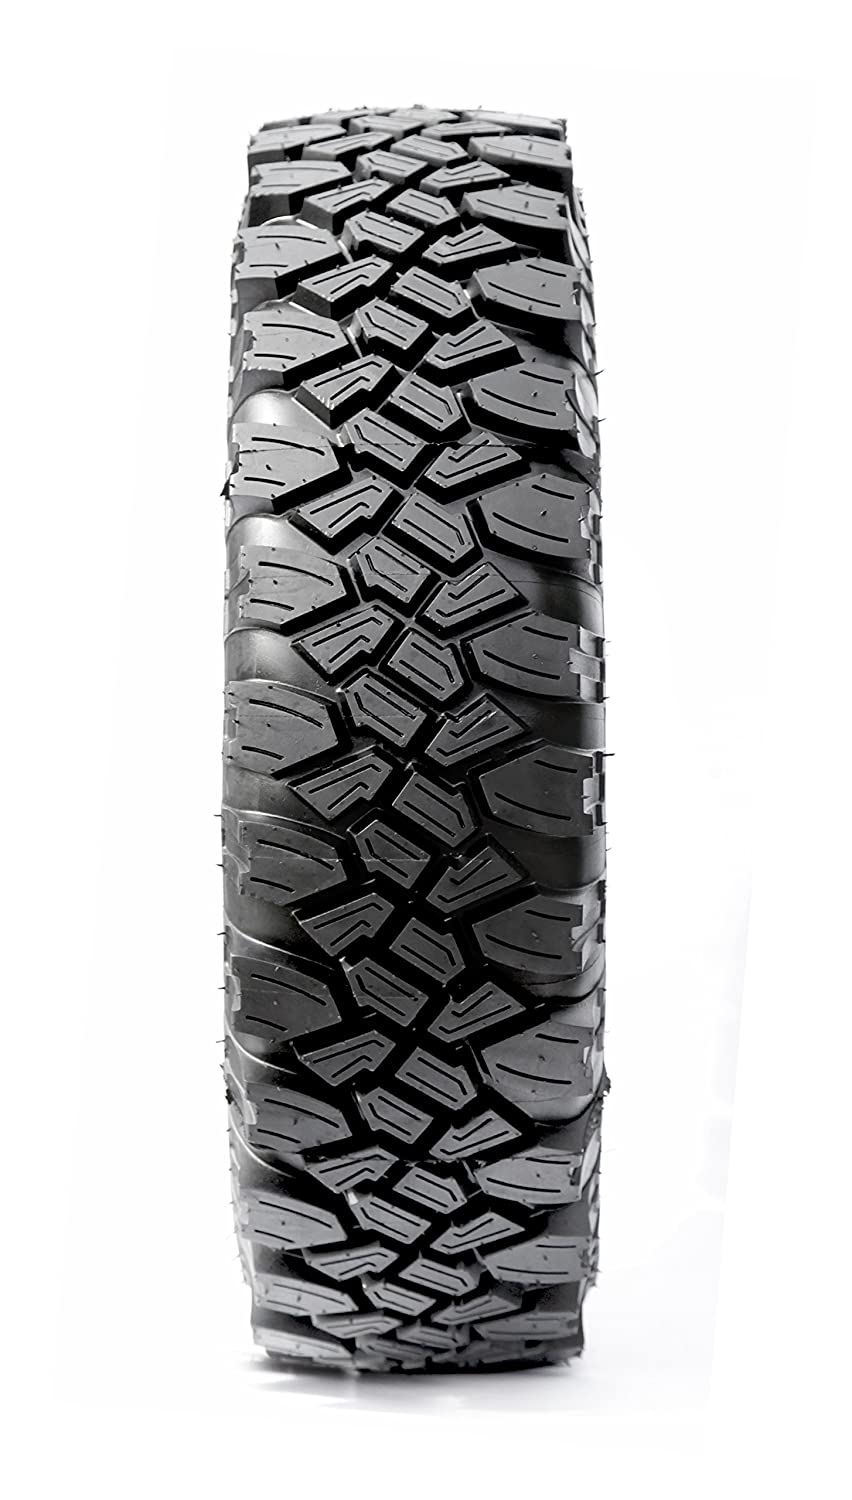 Insa Turbo TRACTION TRACK (235/70 R16 106 Q recauchutados) : Amazon.es: Coche y moto